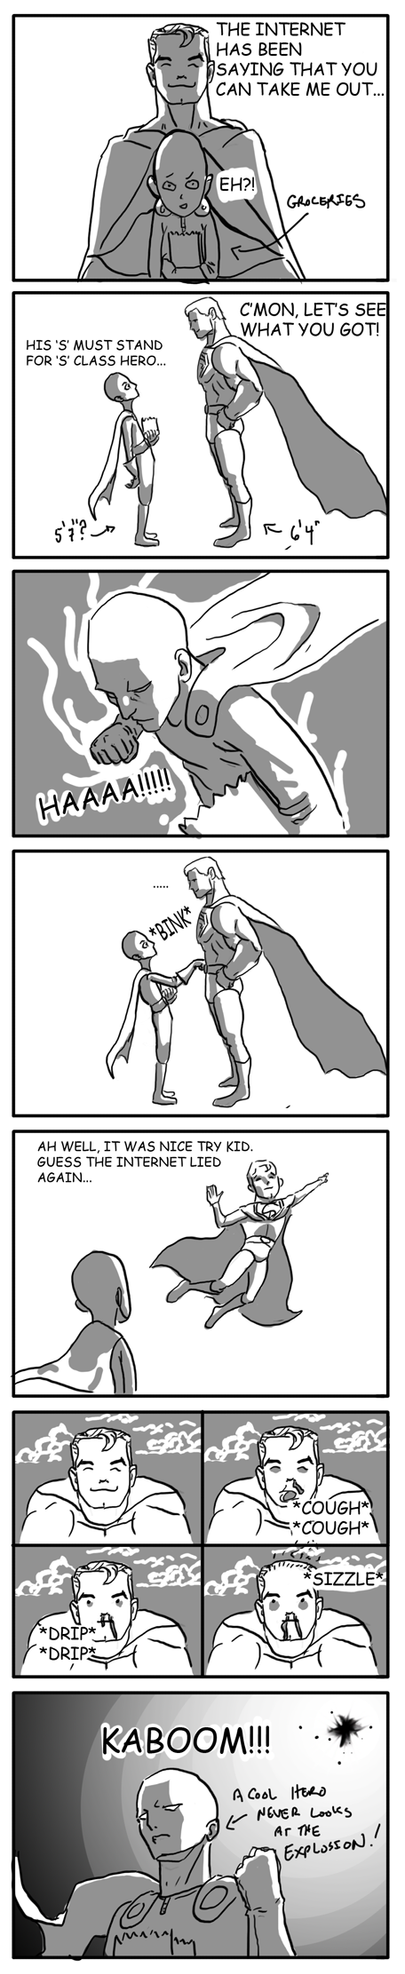 Onepunch man Vs Superman by antant